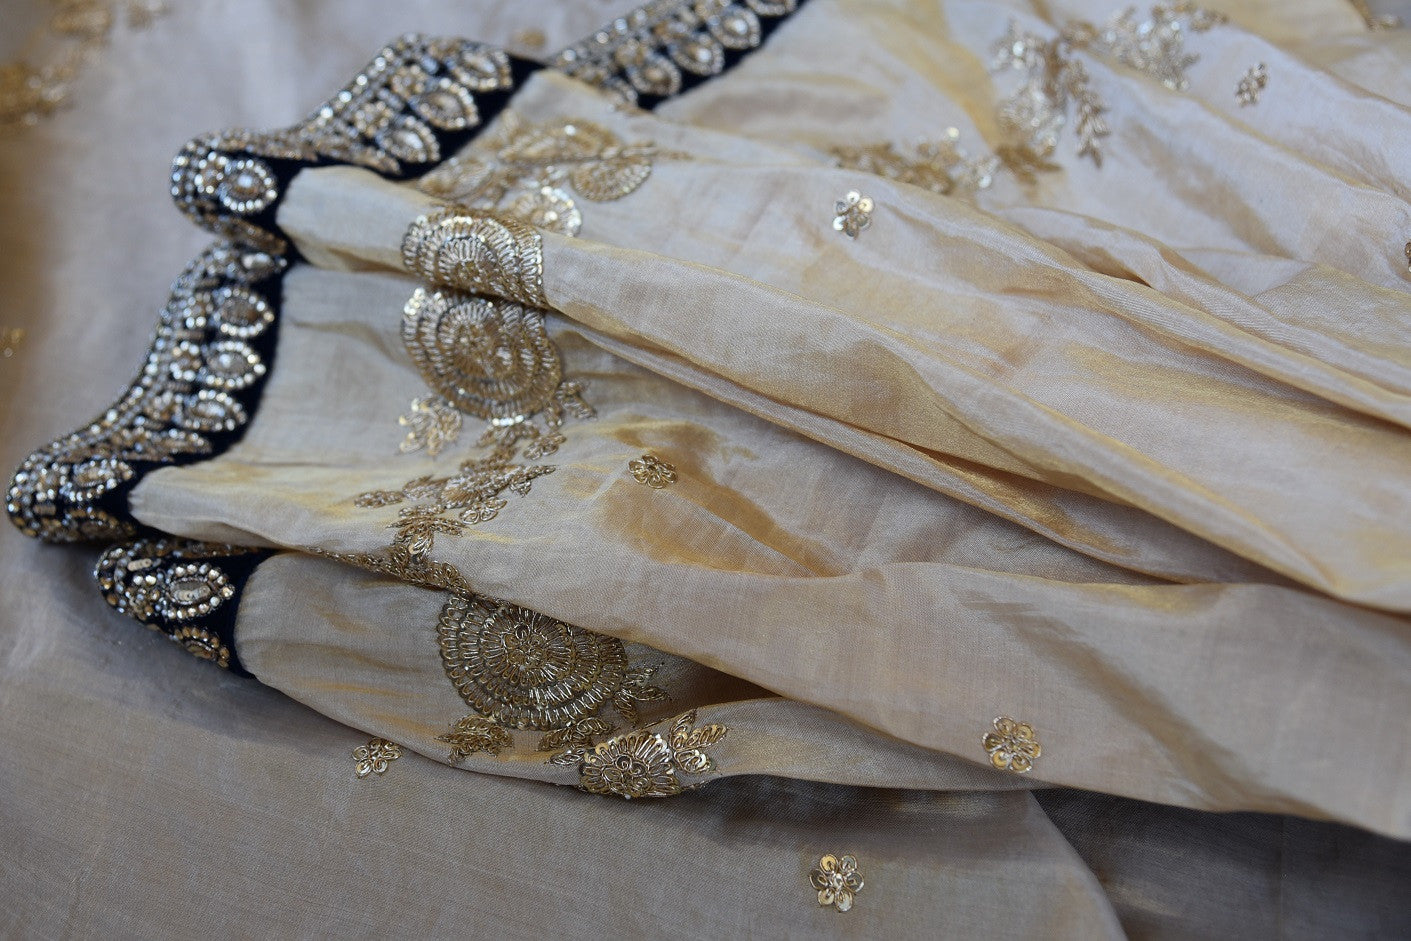 90A949 Exquisite white, black and gold saree online in USA at our Indian clothing store Pure Elegance. The embroidered tissue silk sari is a great pick for ethnic wedding functions and parties.